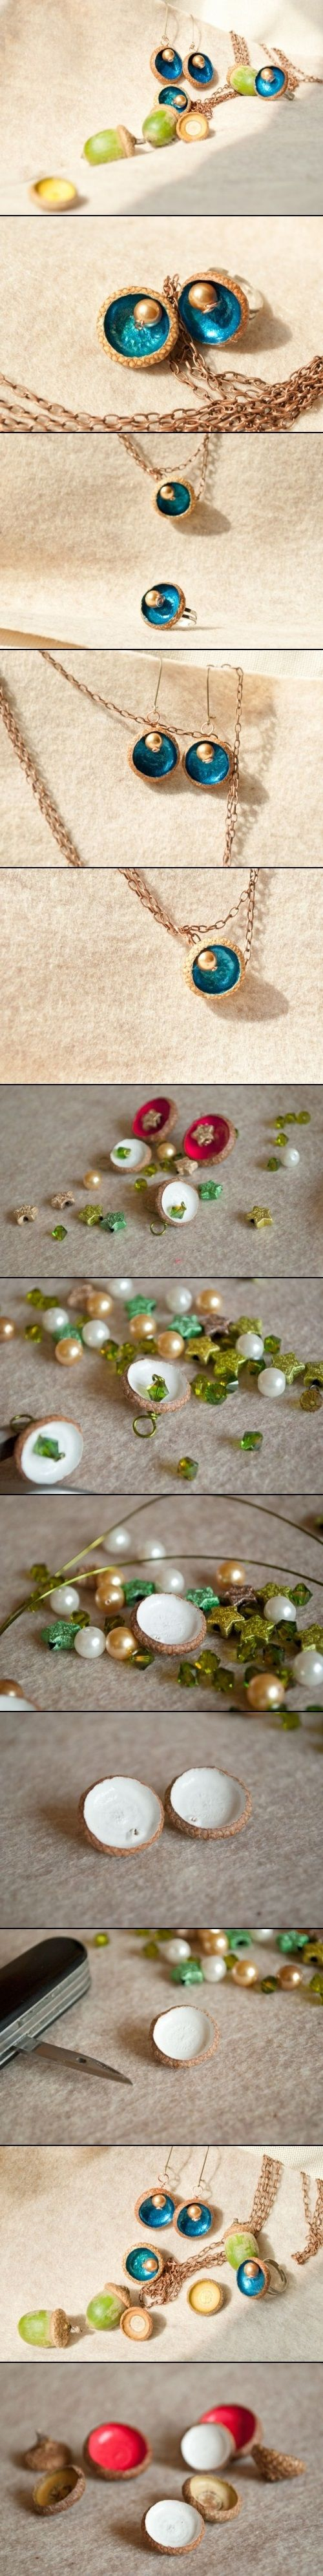 DIY collar de bellotas